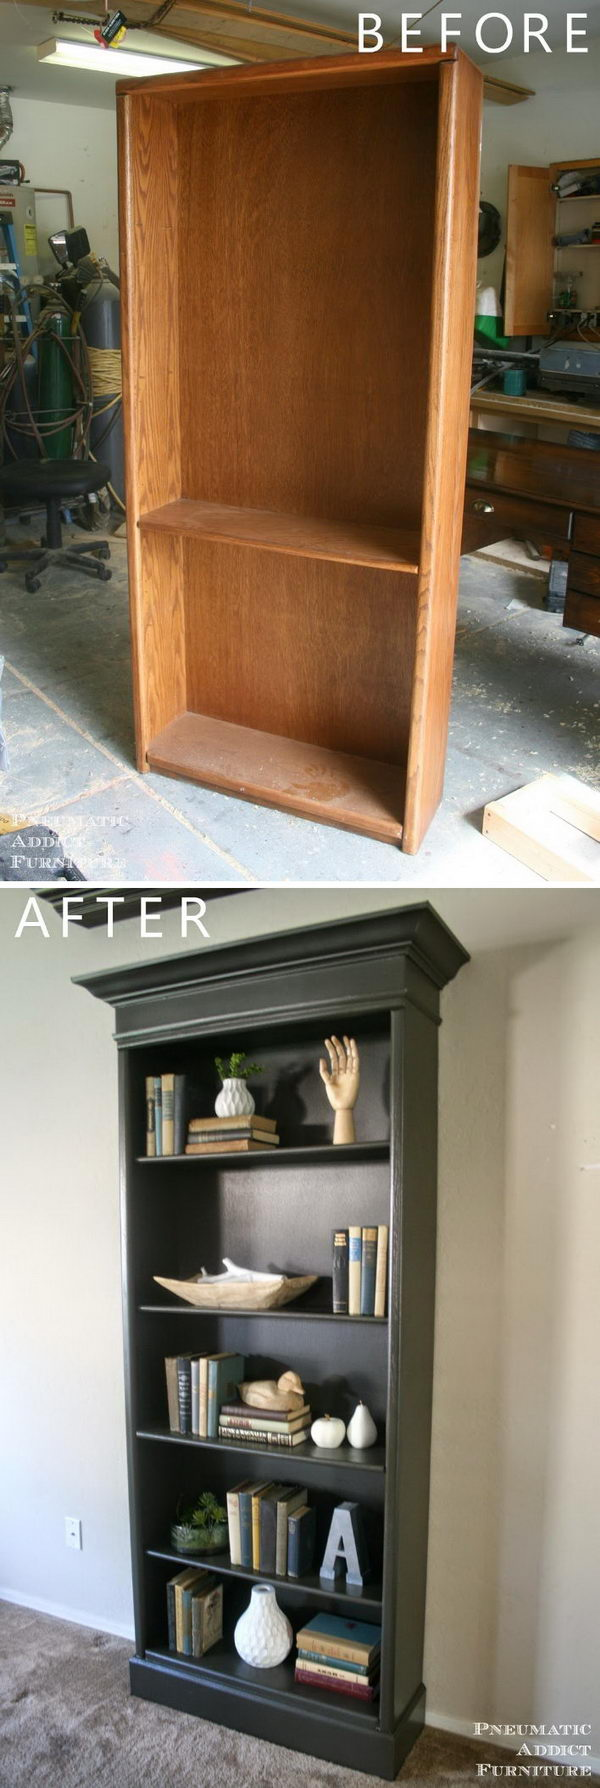 Add Height and Molding to Upgrade Boring Bookshelves.